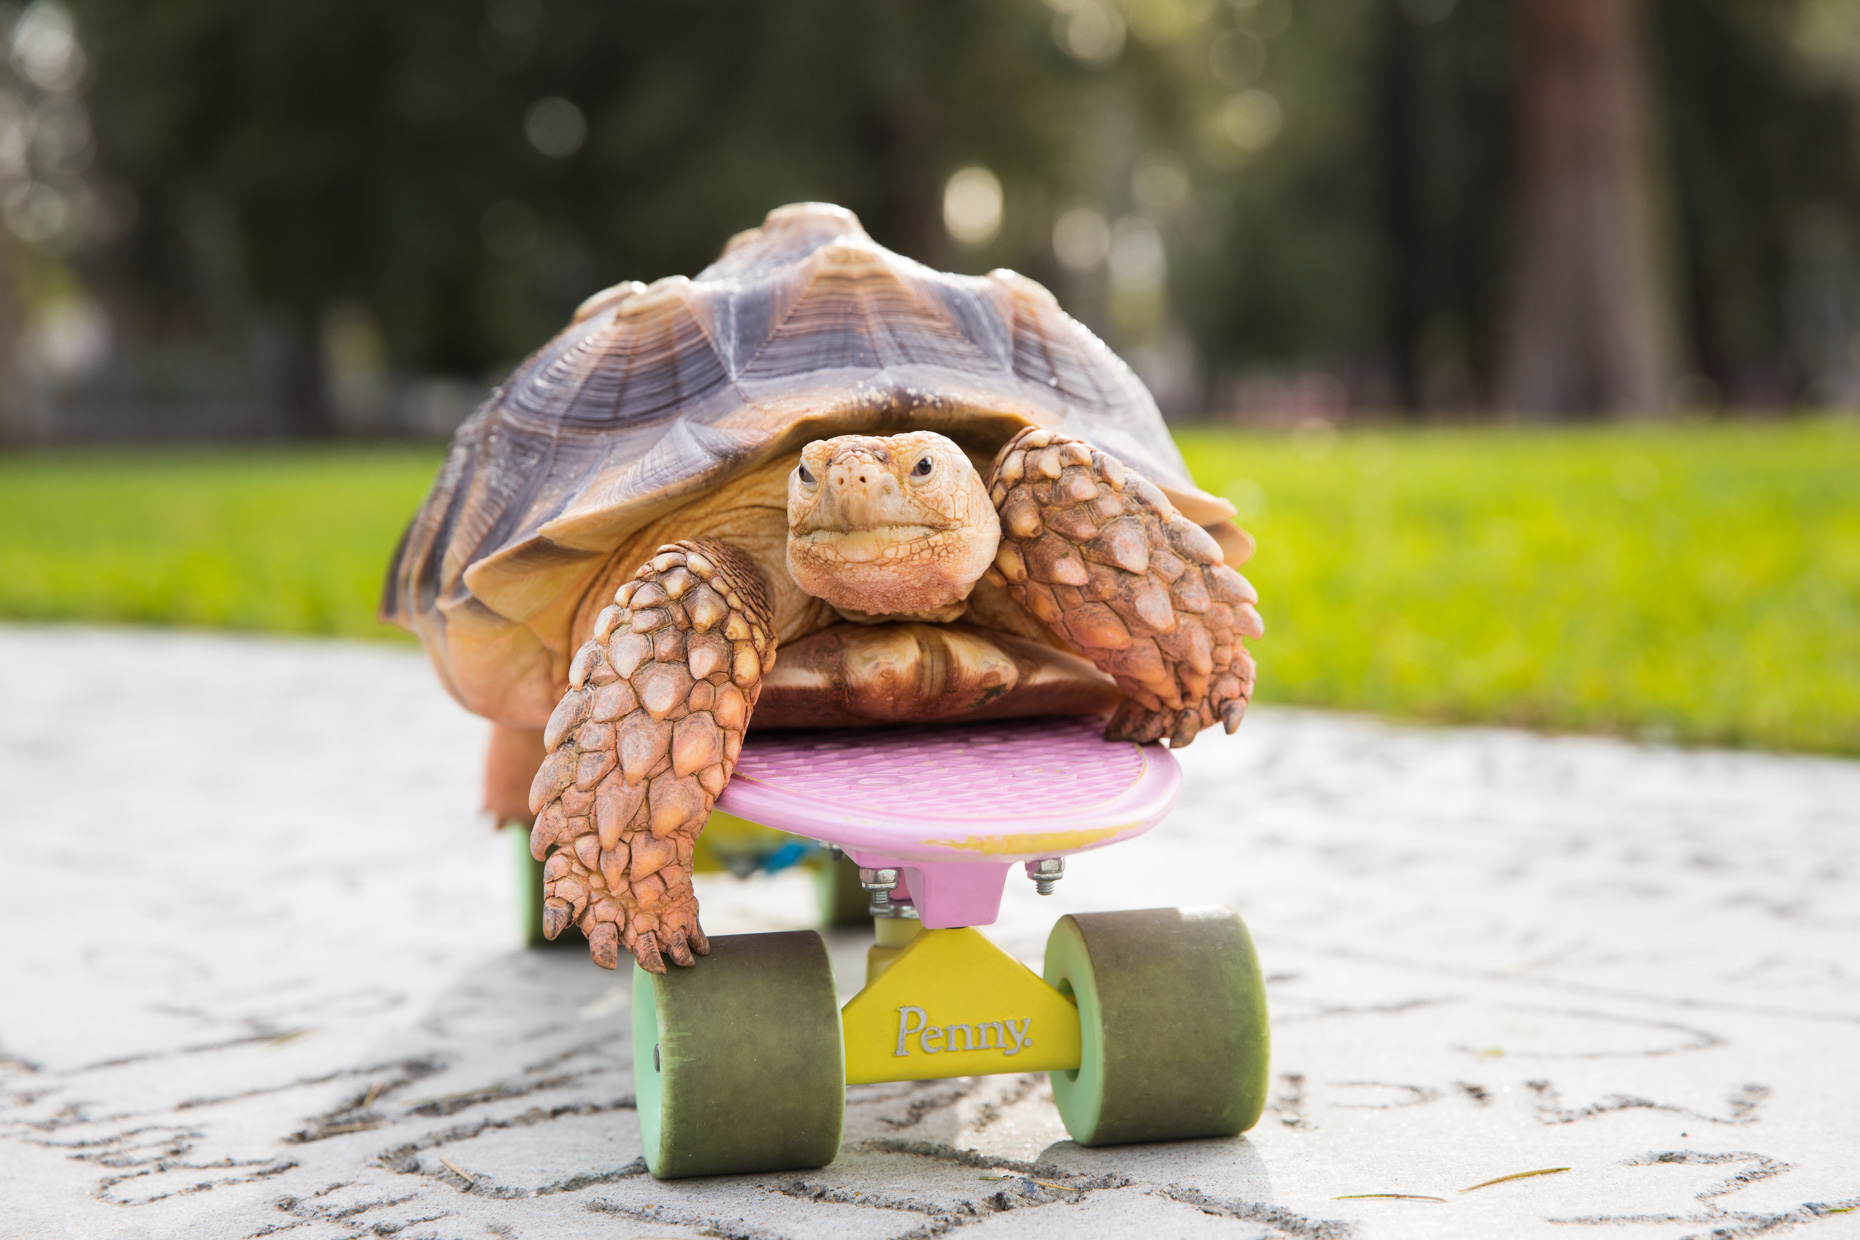 Animal Photography | Tortoise on Skateboard by Mark Rogers